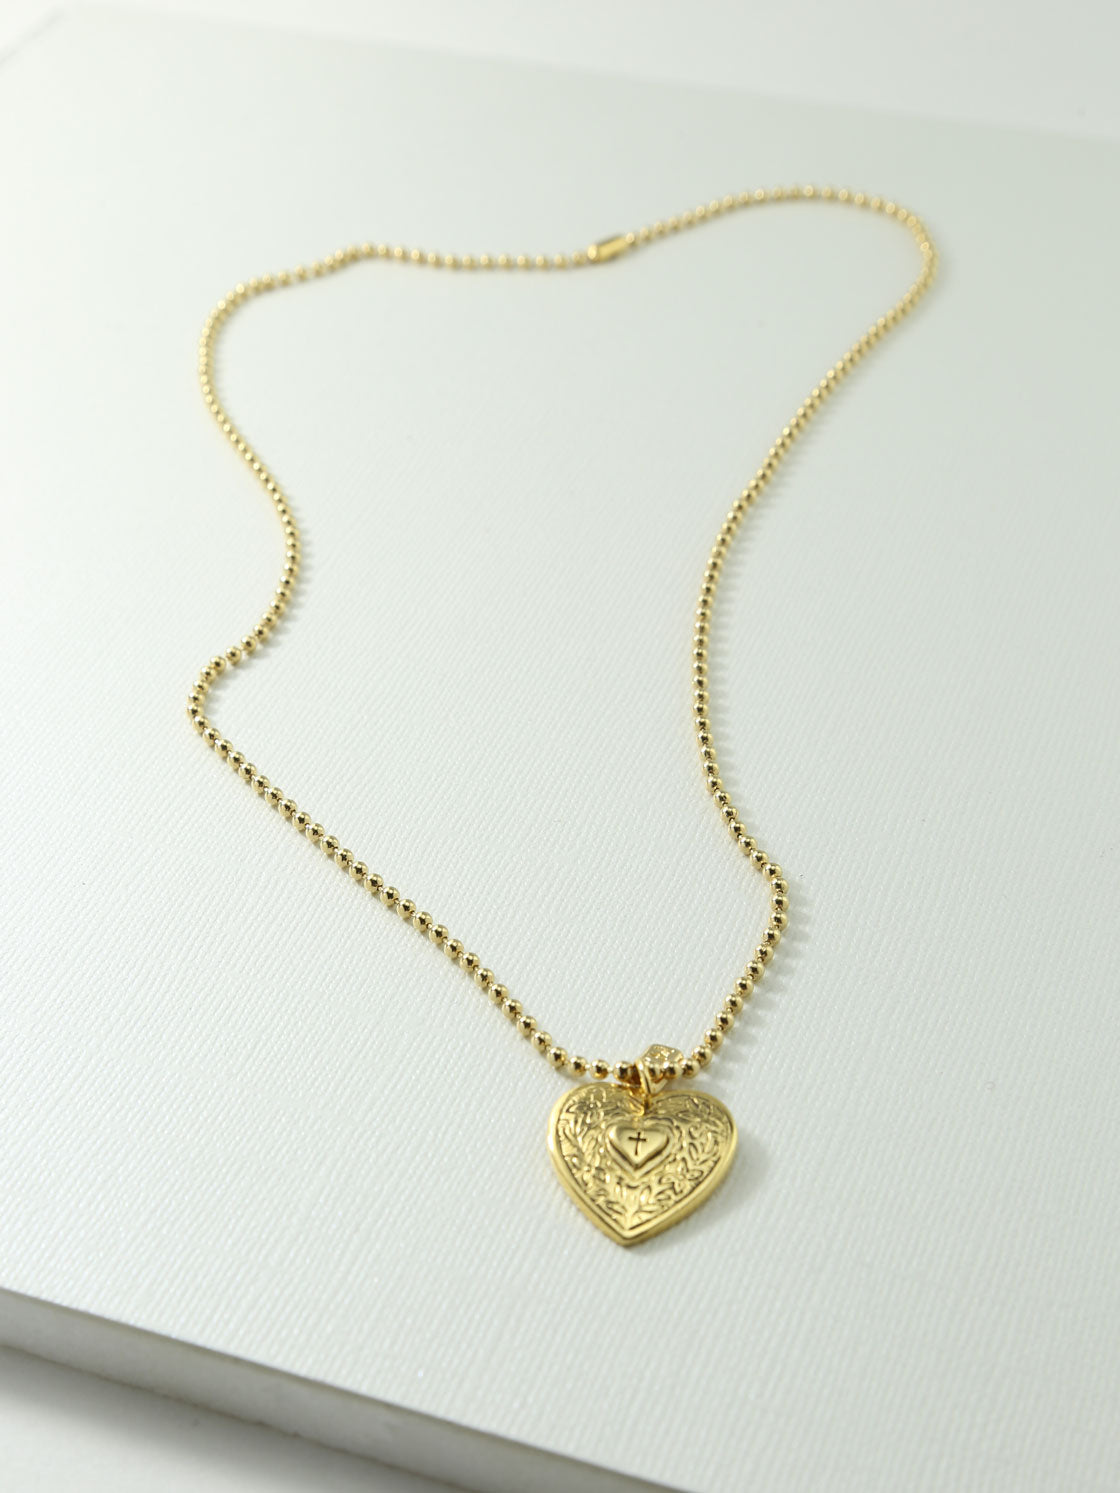 h cubic and gold webstore double necklace zirconia silver heart number samuel d product pendant